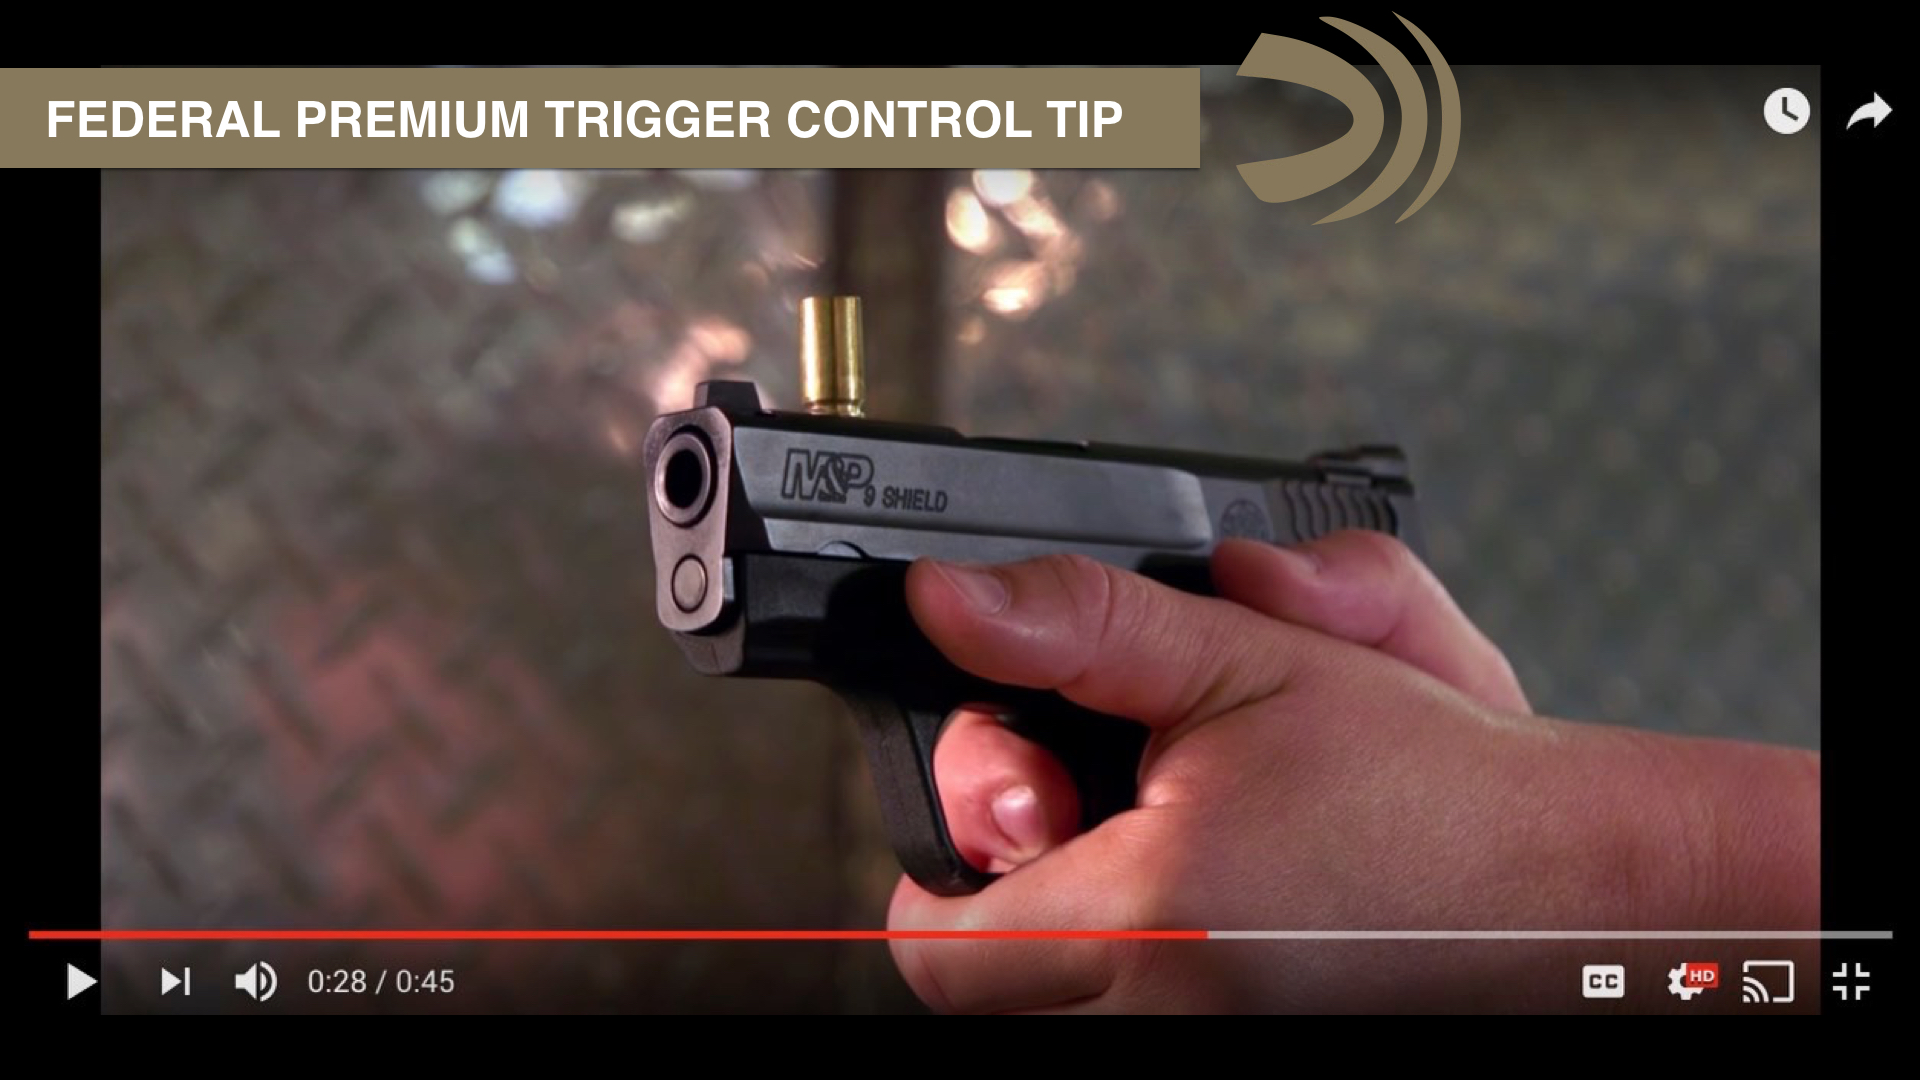 Improve your trigger control with this classic drill - Federal Premium & Julie Golob SHOOT Tip